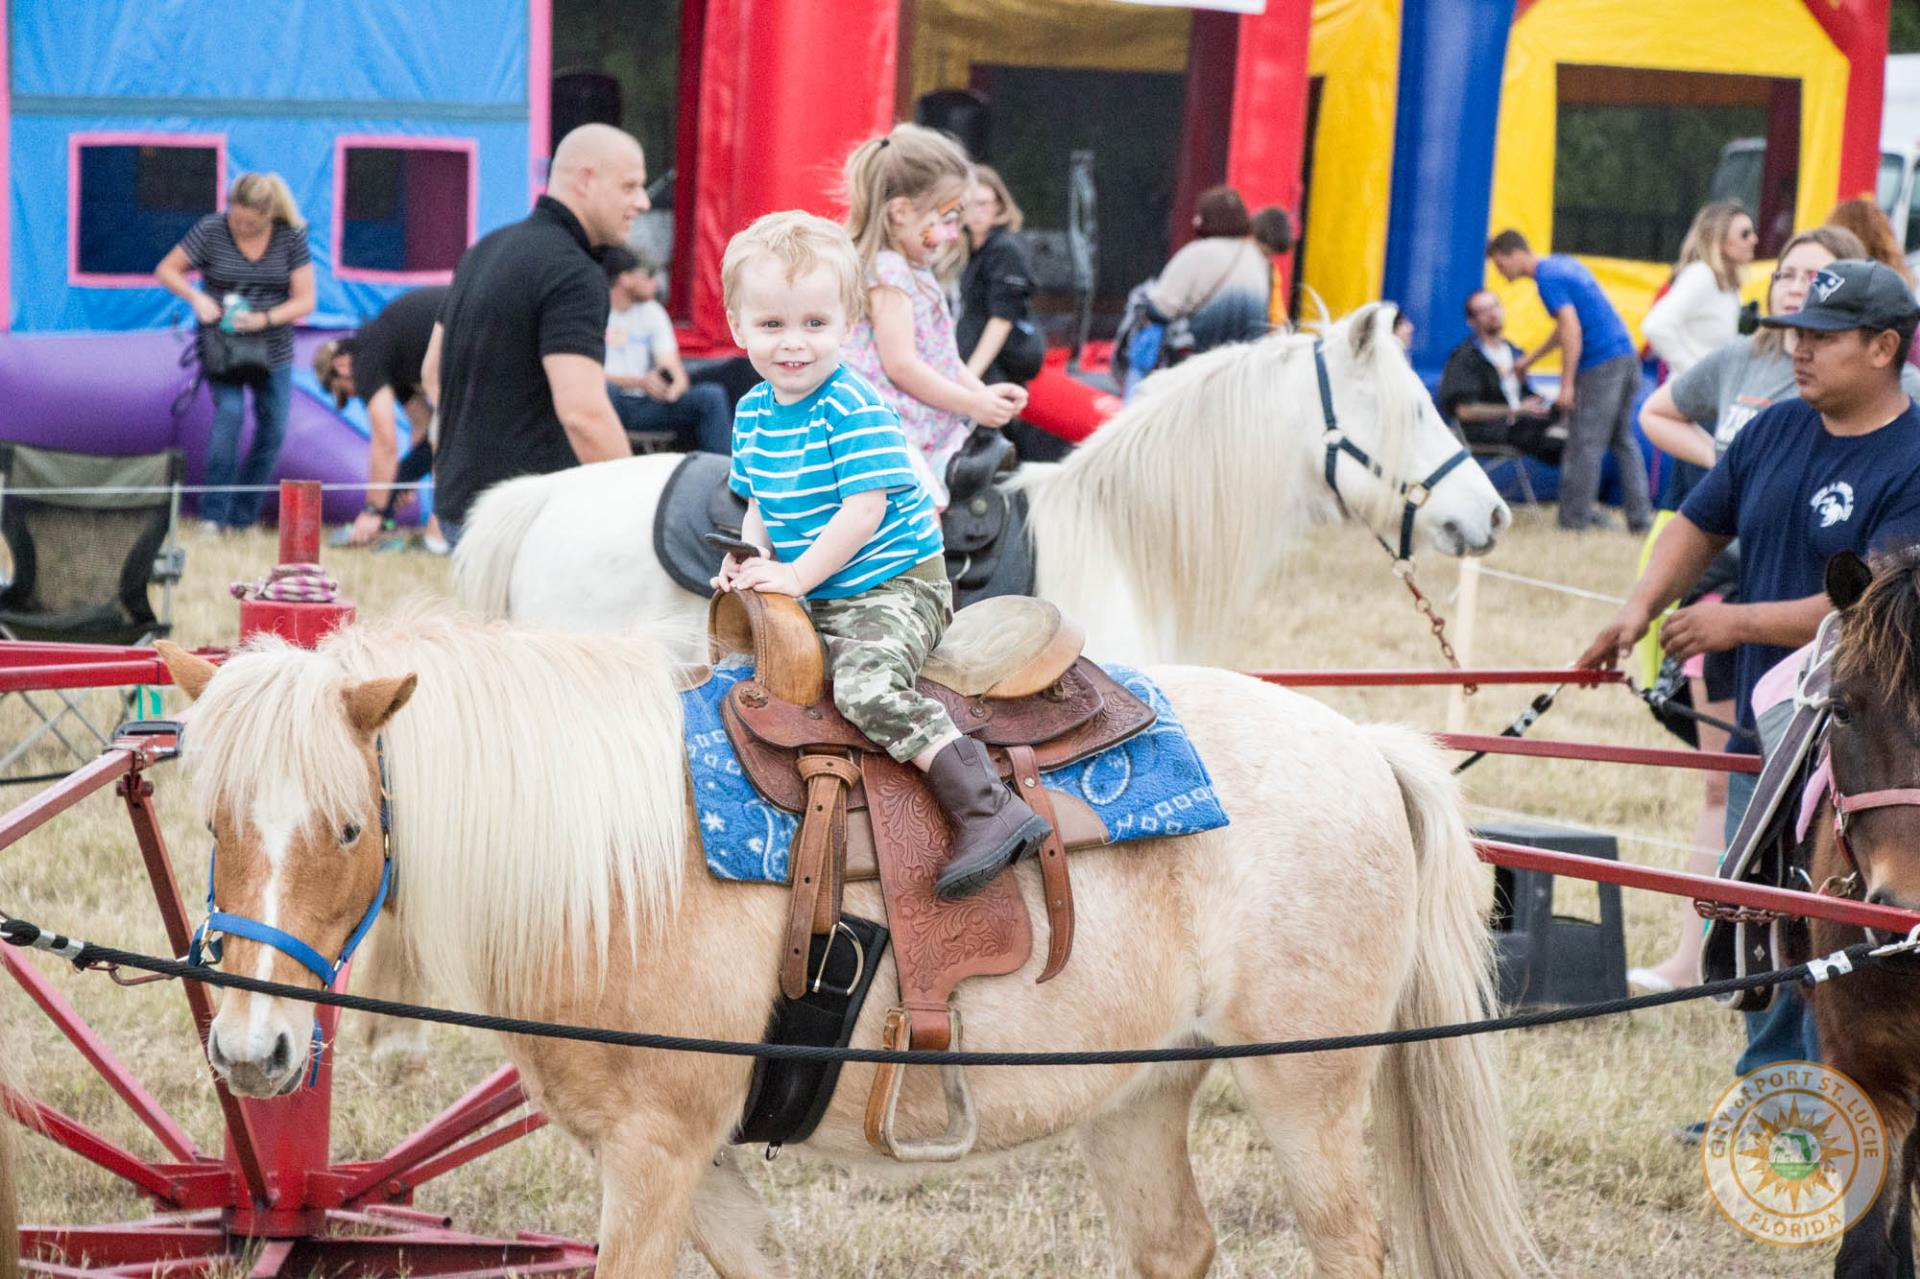 Child on pony ride